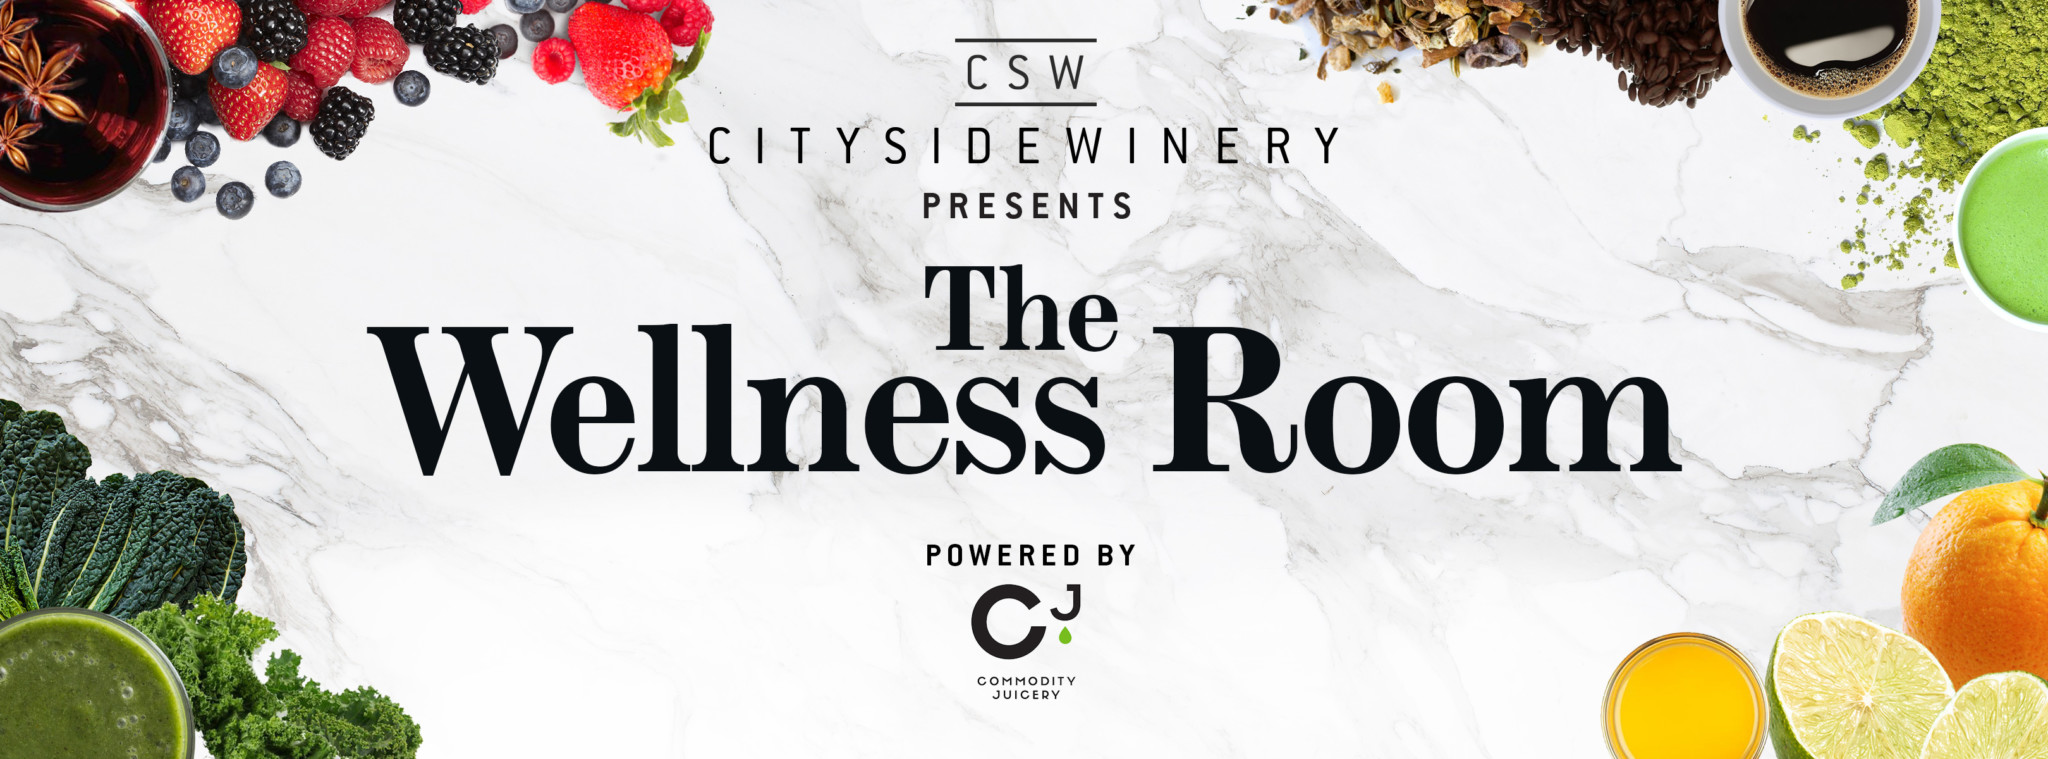 City Side Winery Presents the Wellness Room